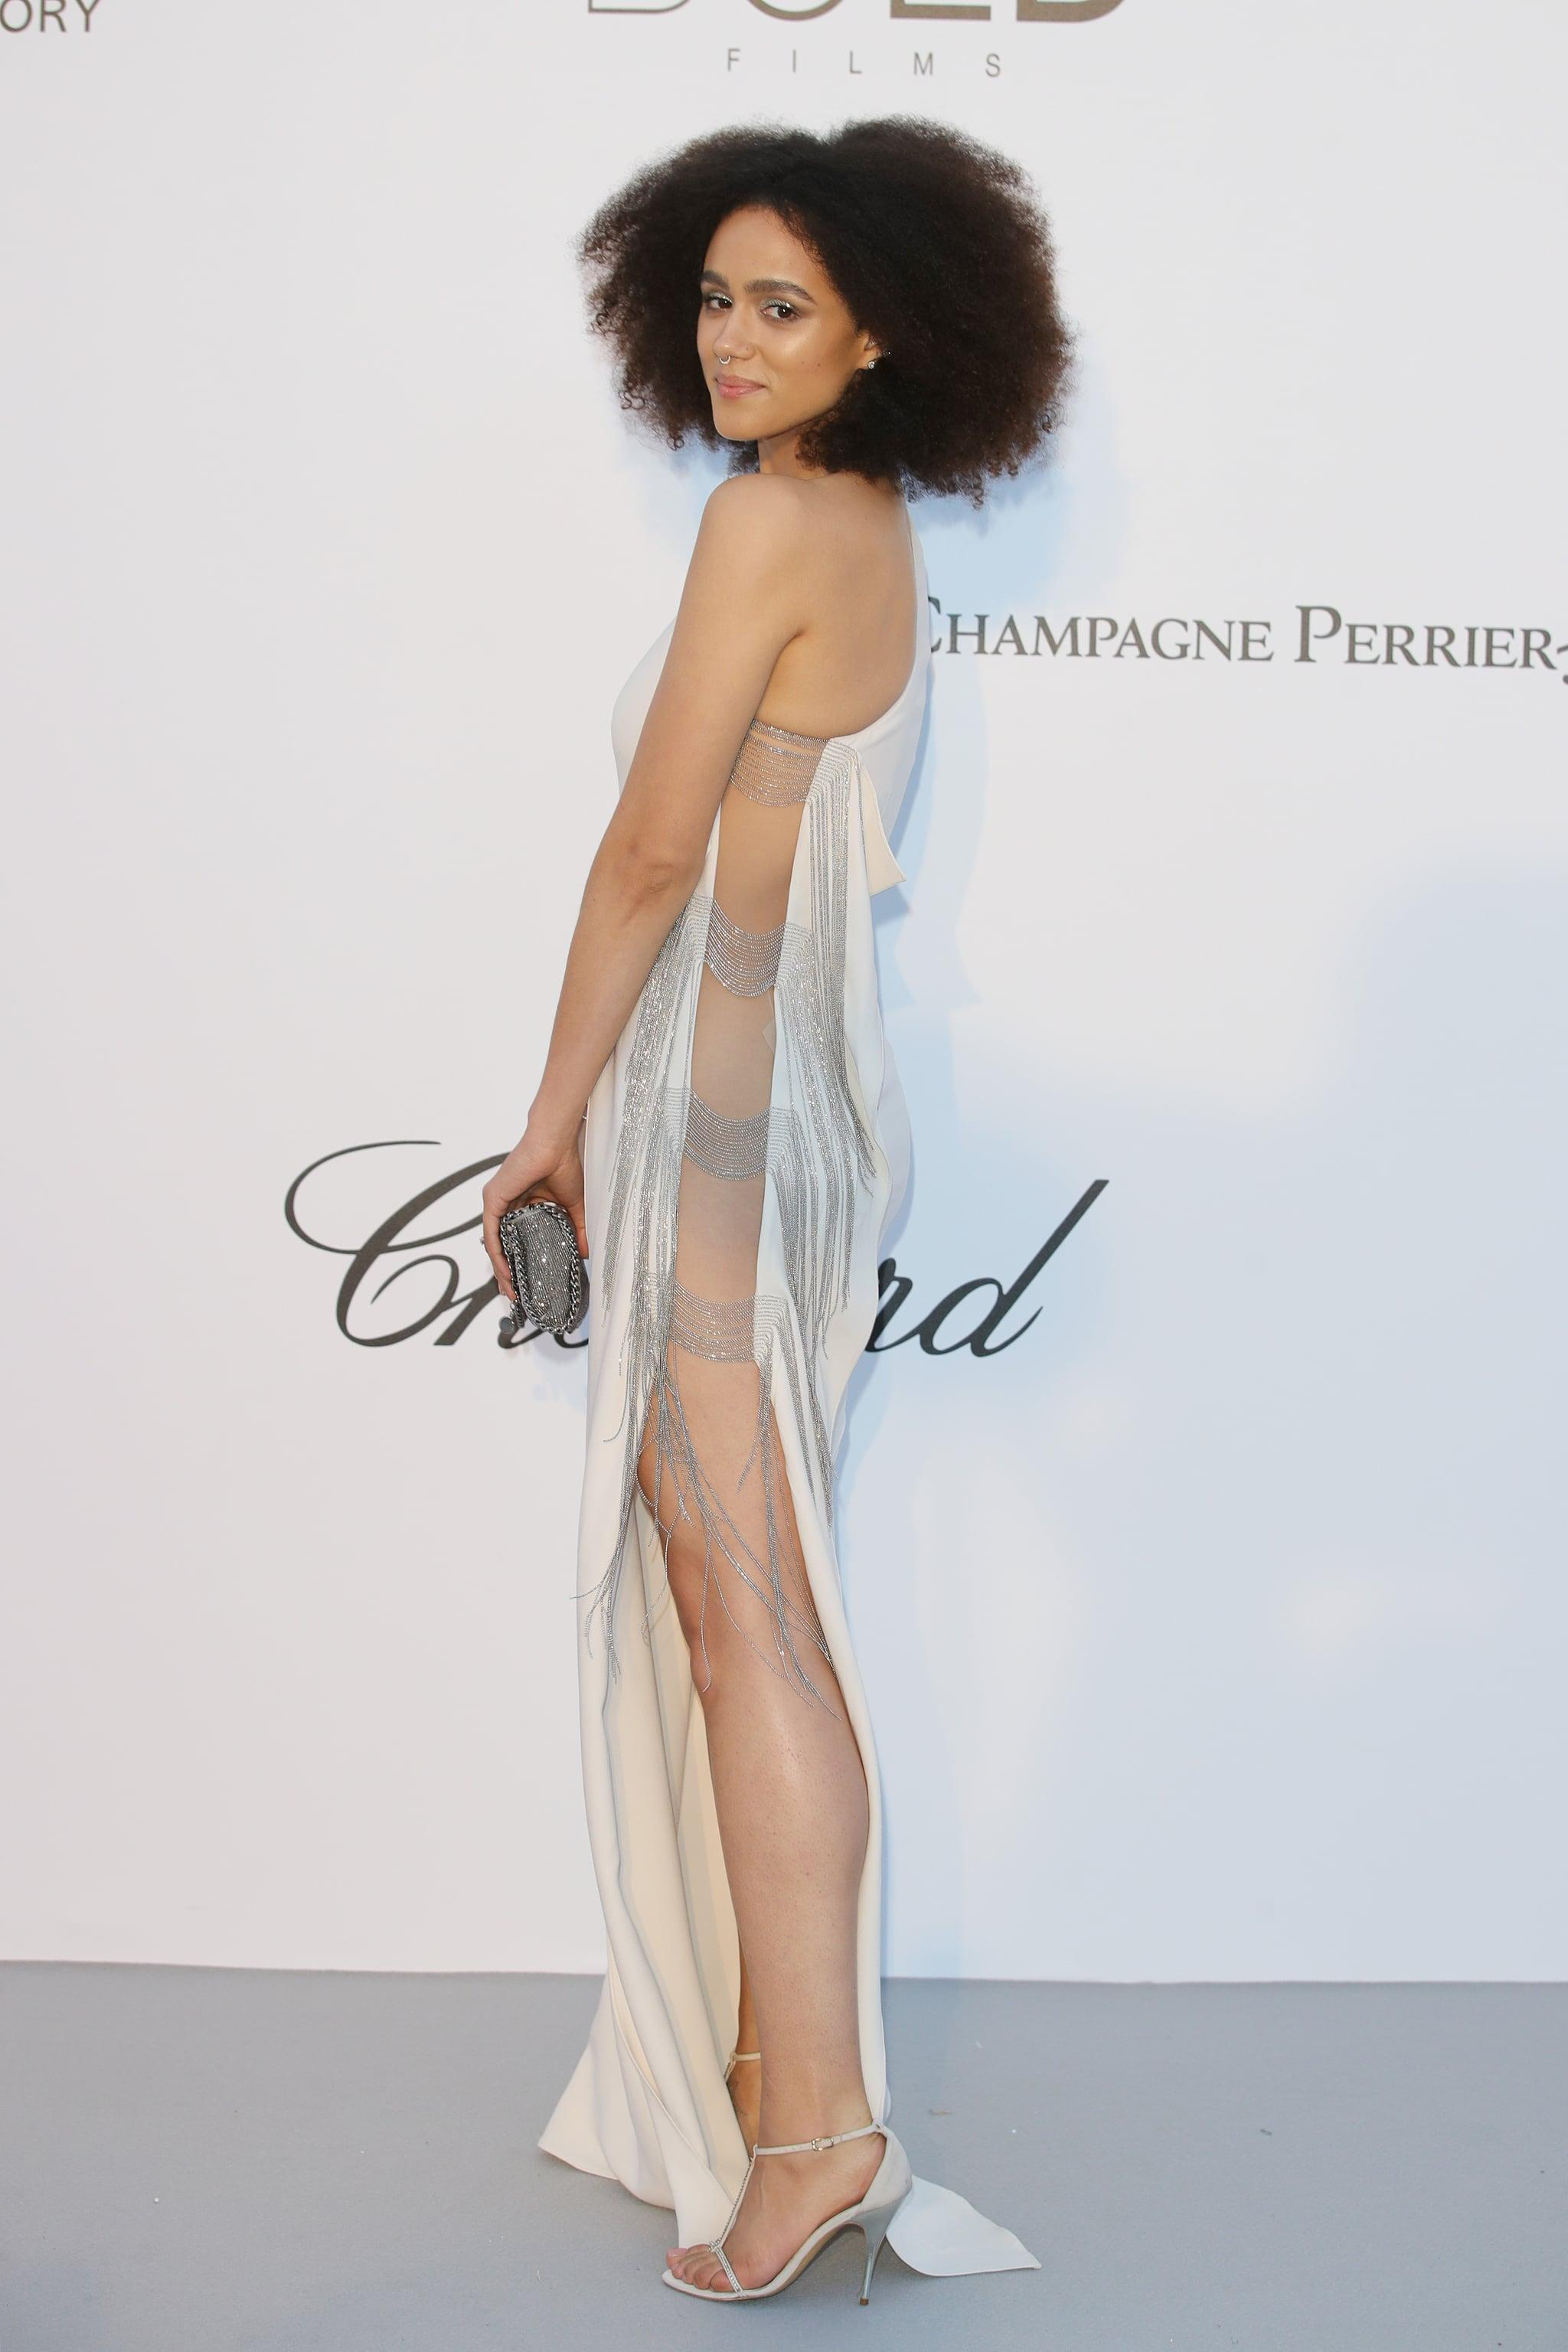 These Sexy Nathalie Emmanuel Pics Will Have You Wanting To Visit